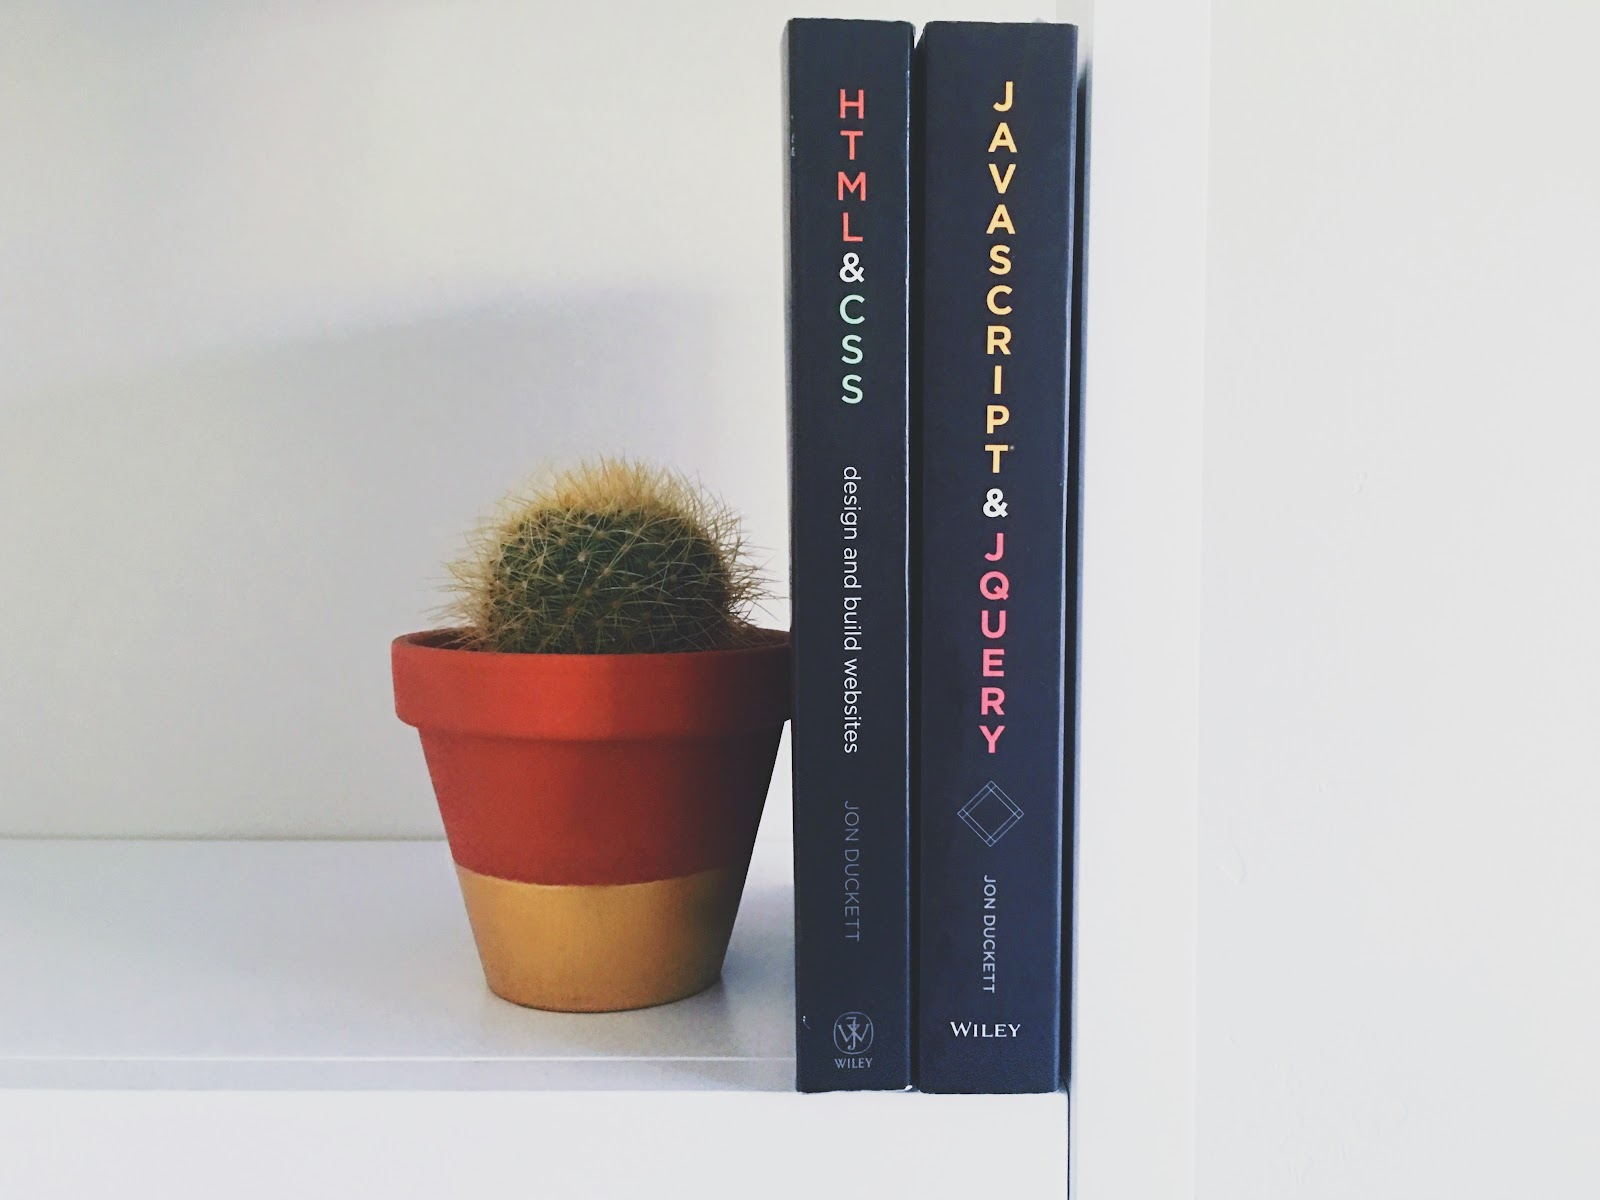 Two coding books being held up by a flower pot